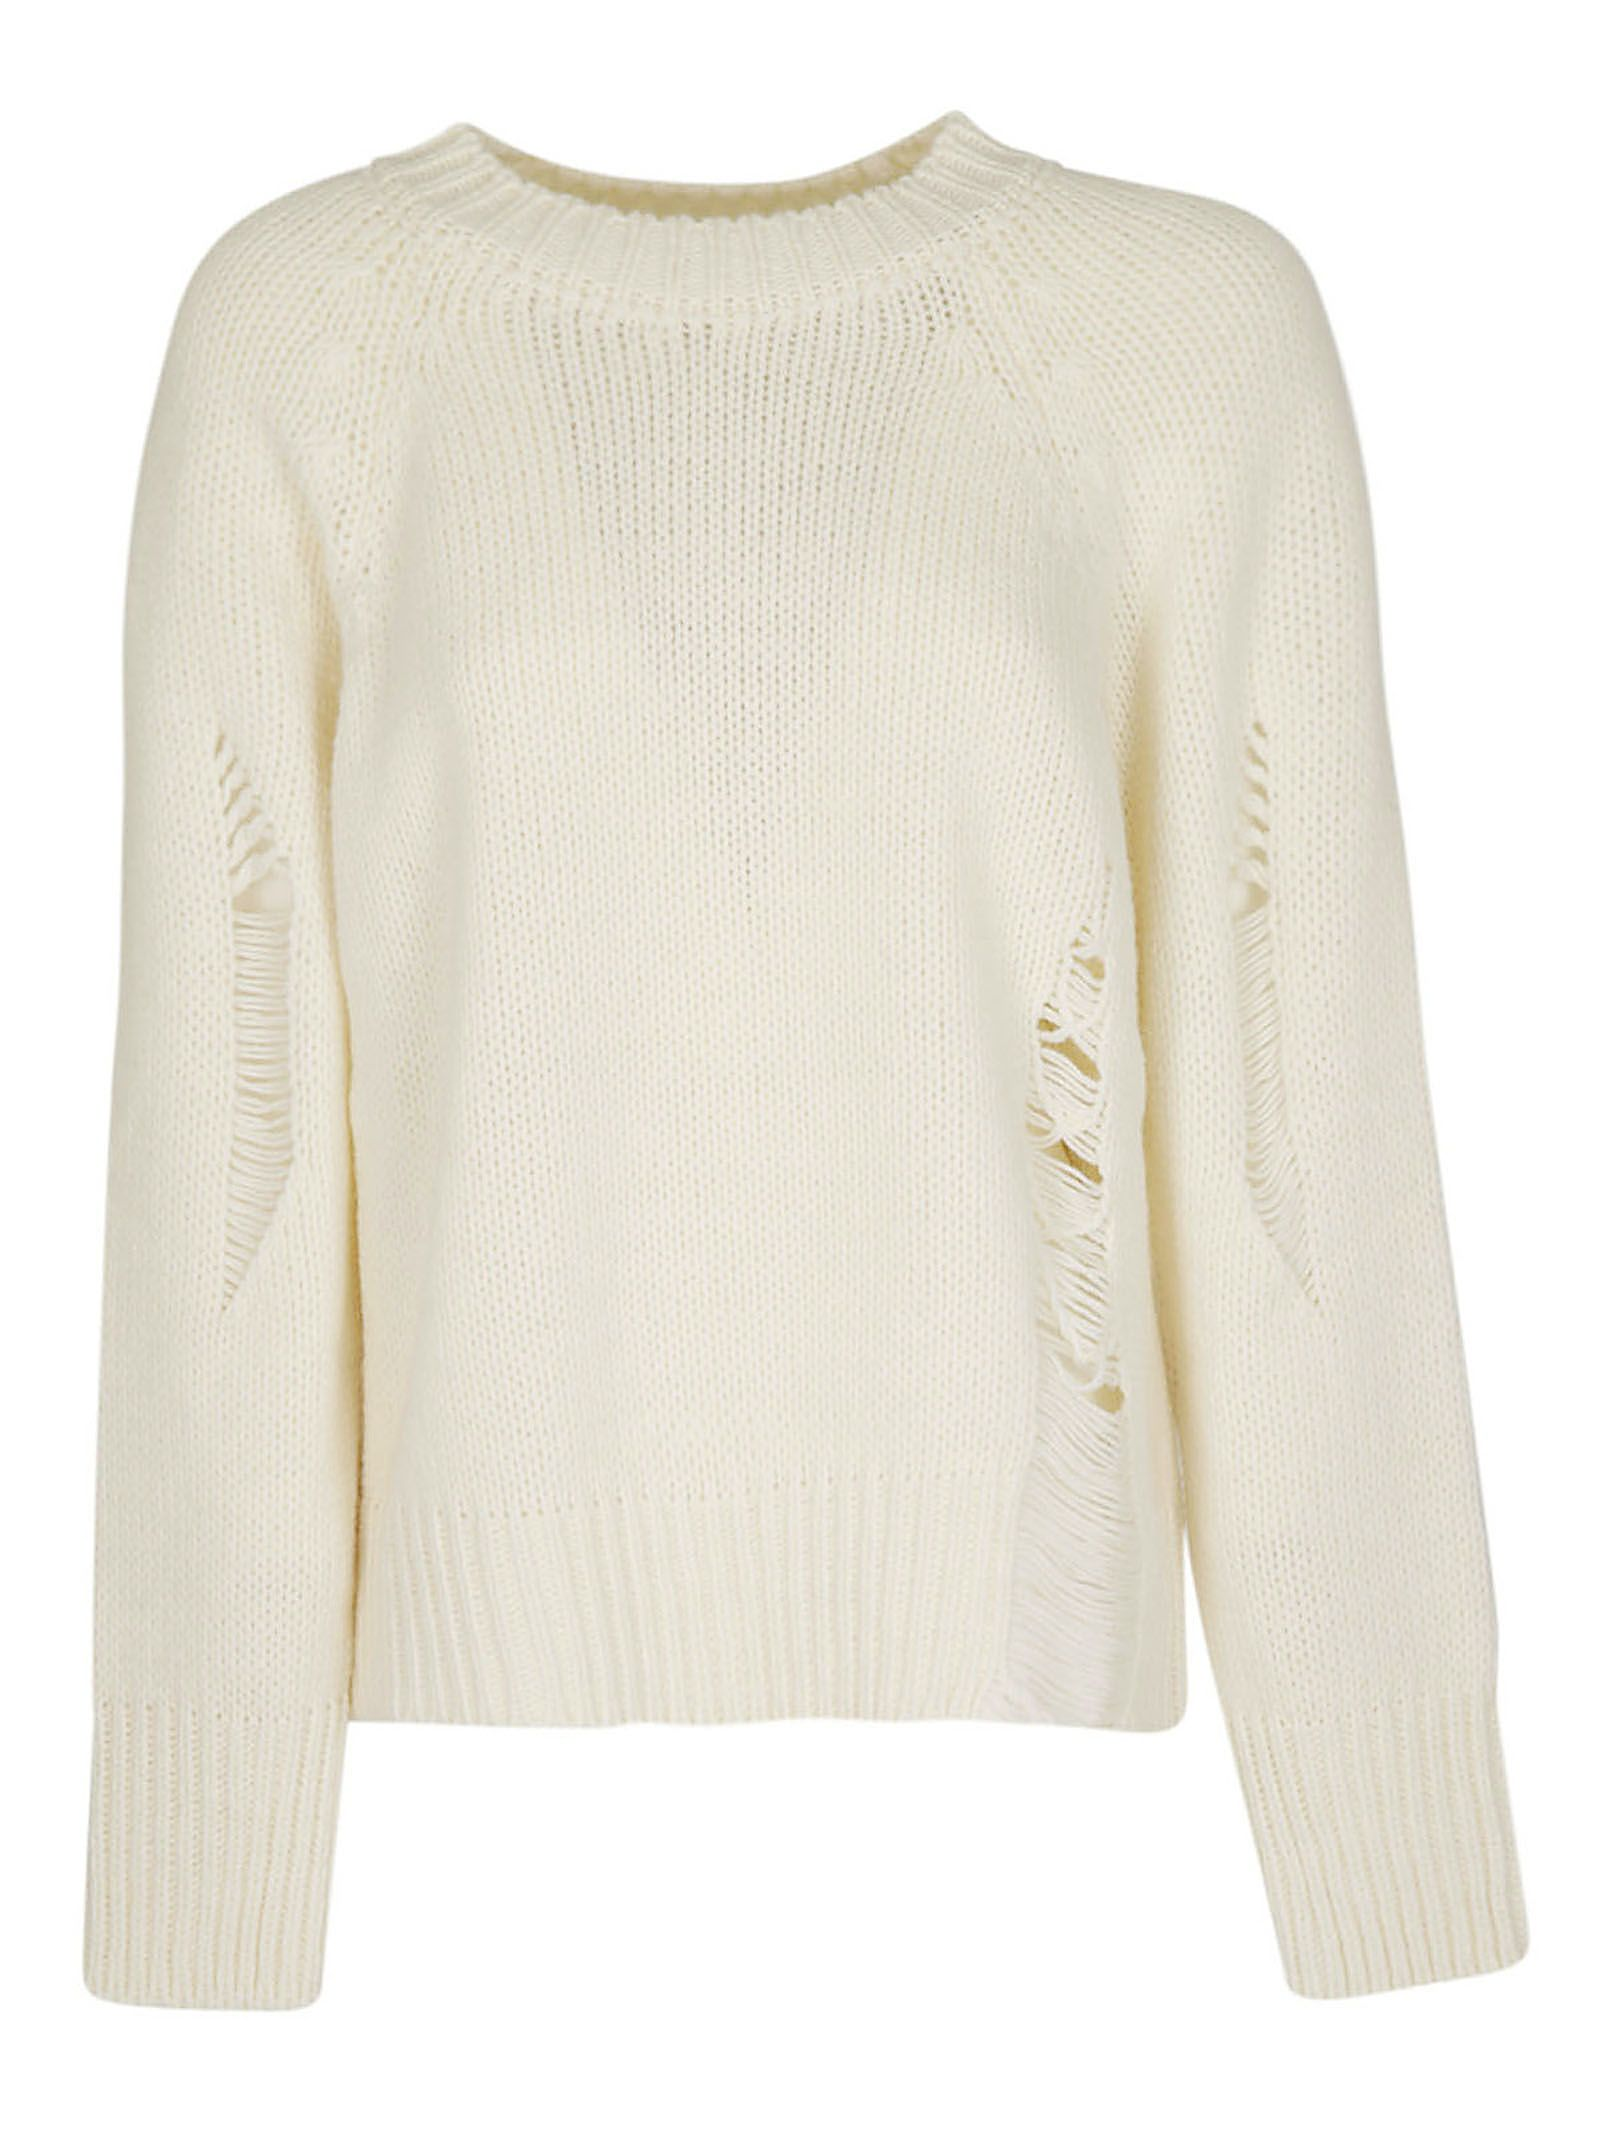 Federica Tosi DISTRESSED SWEATER